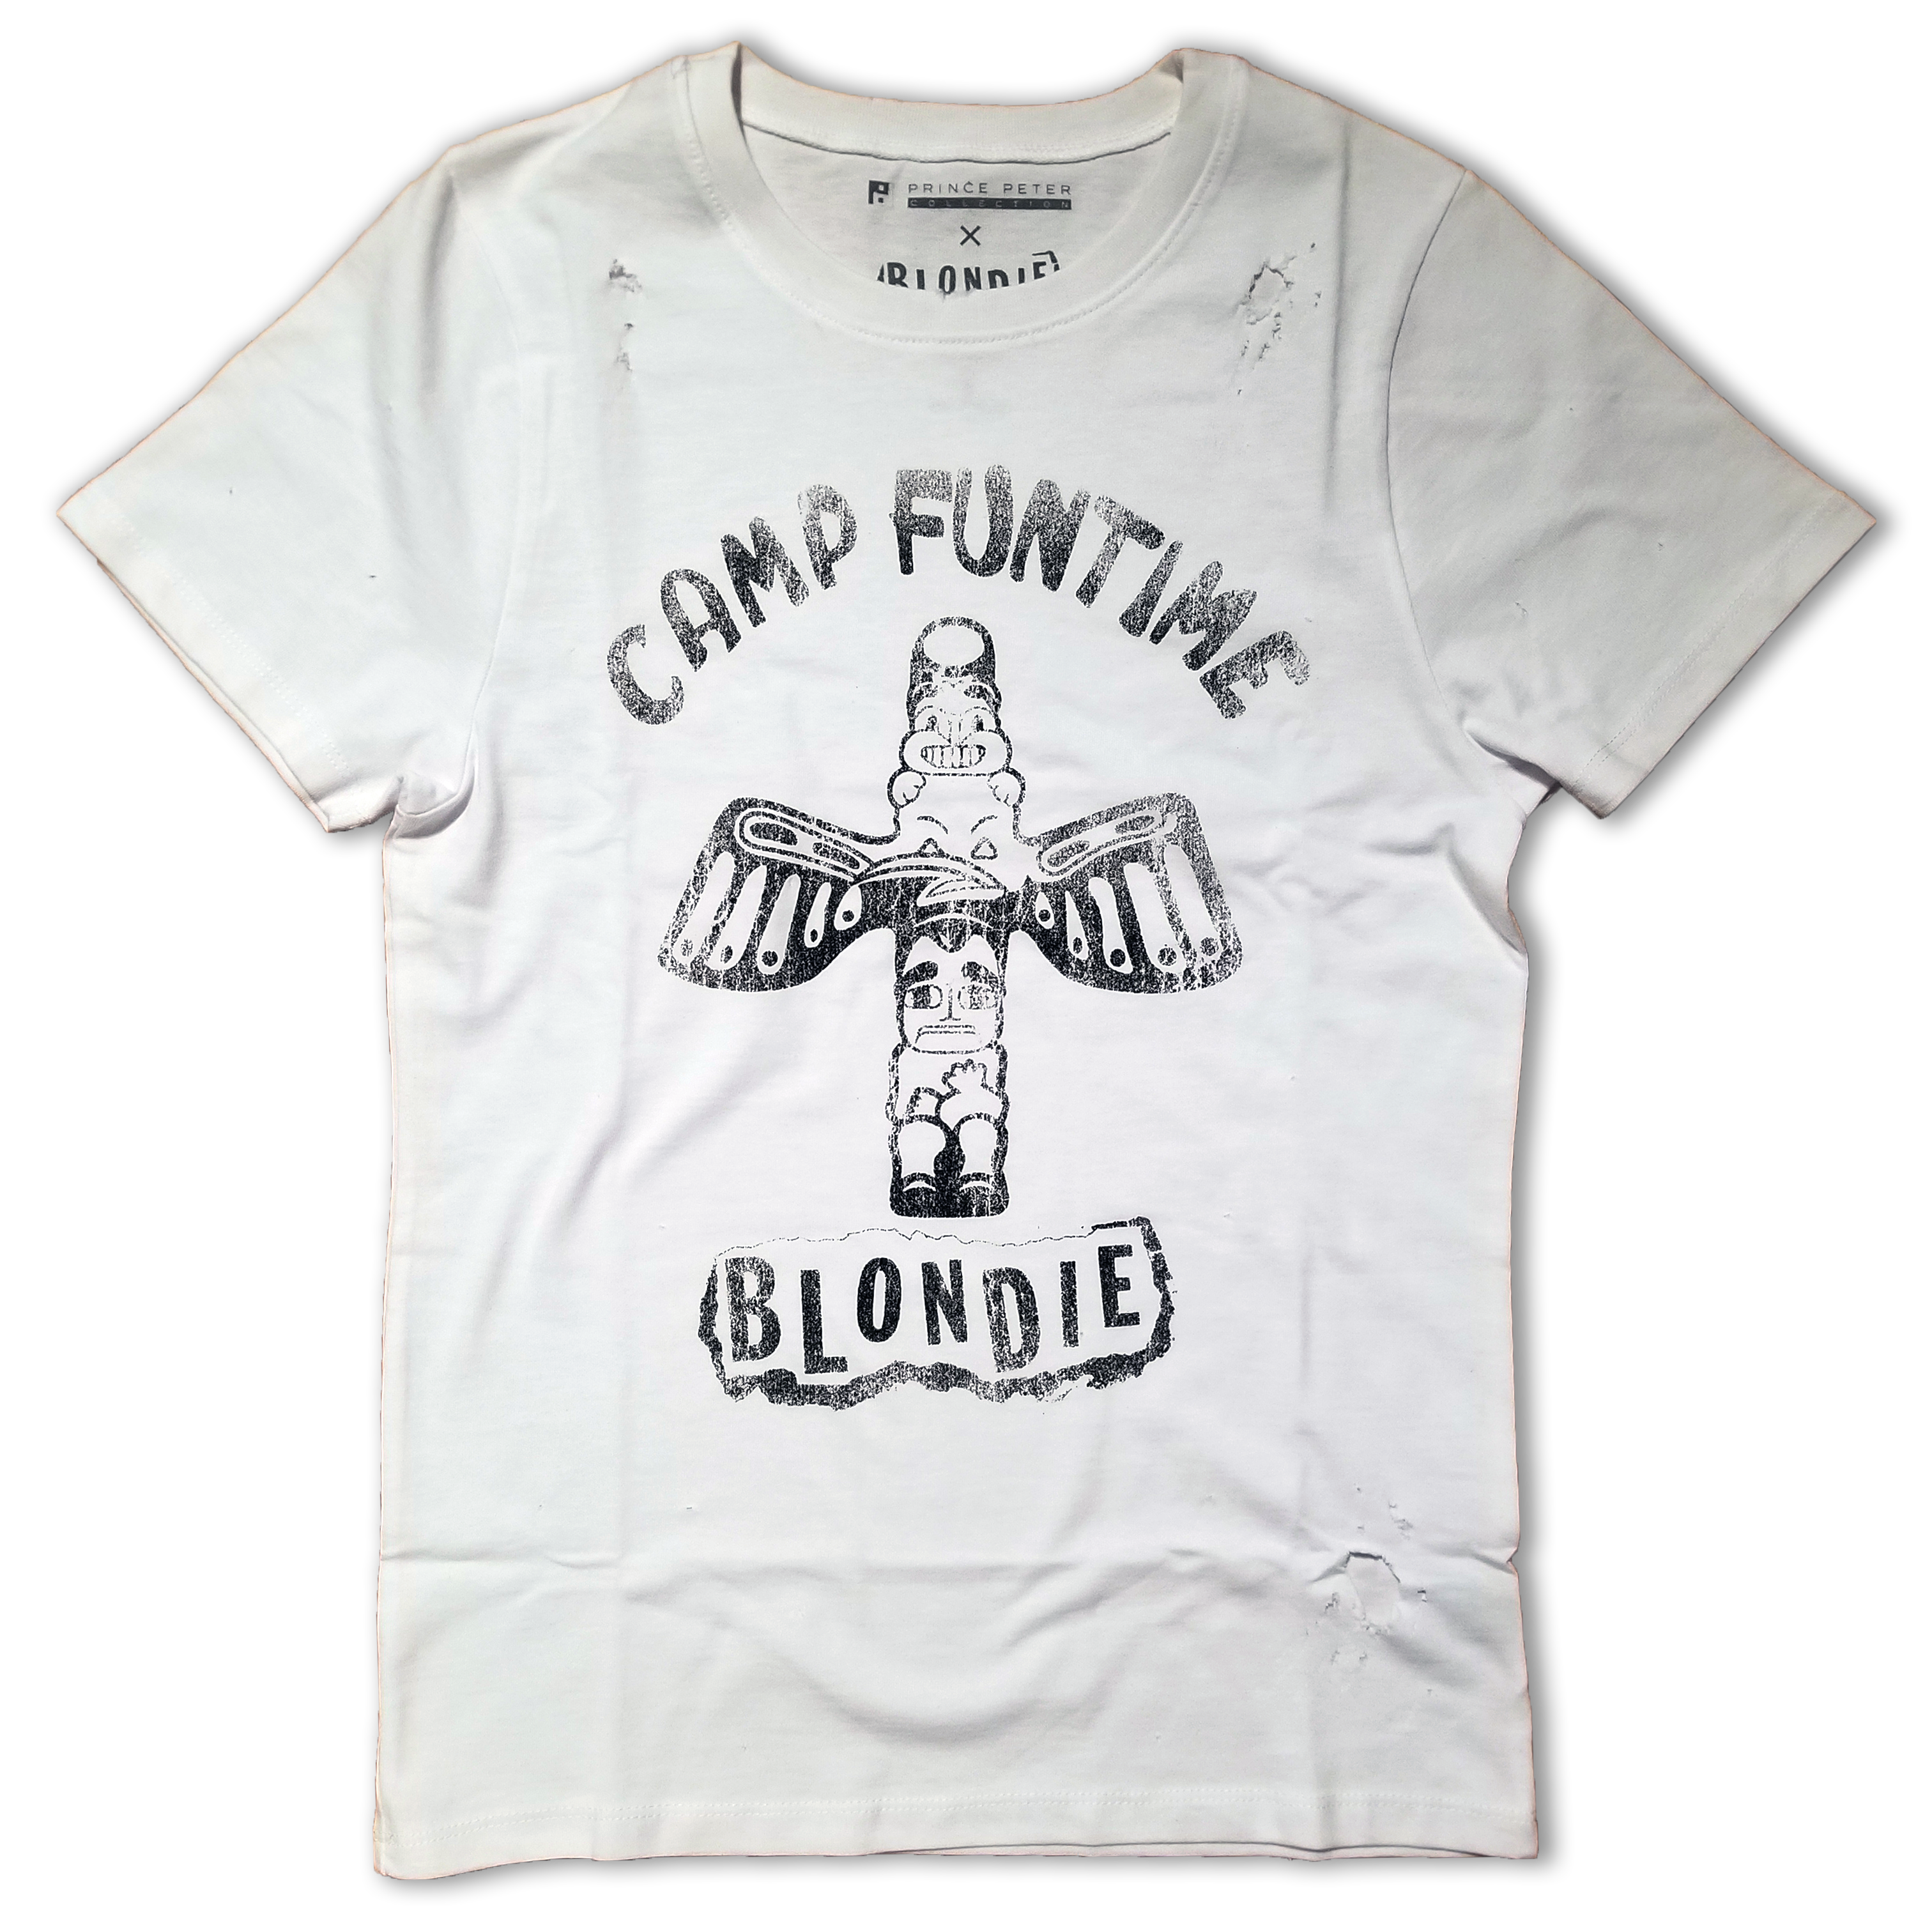 TATTERED CAMP FUNTIME TEE - BlondieUS